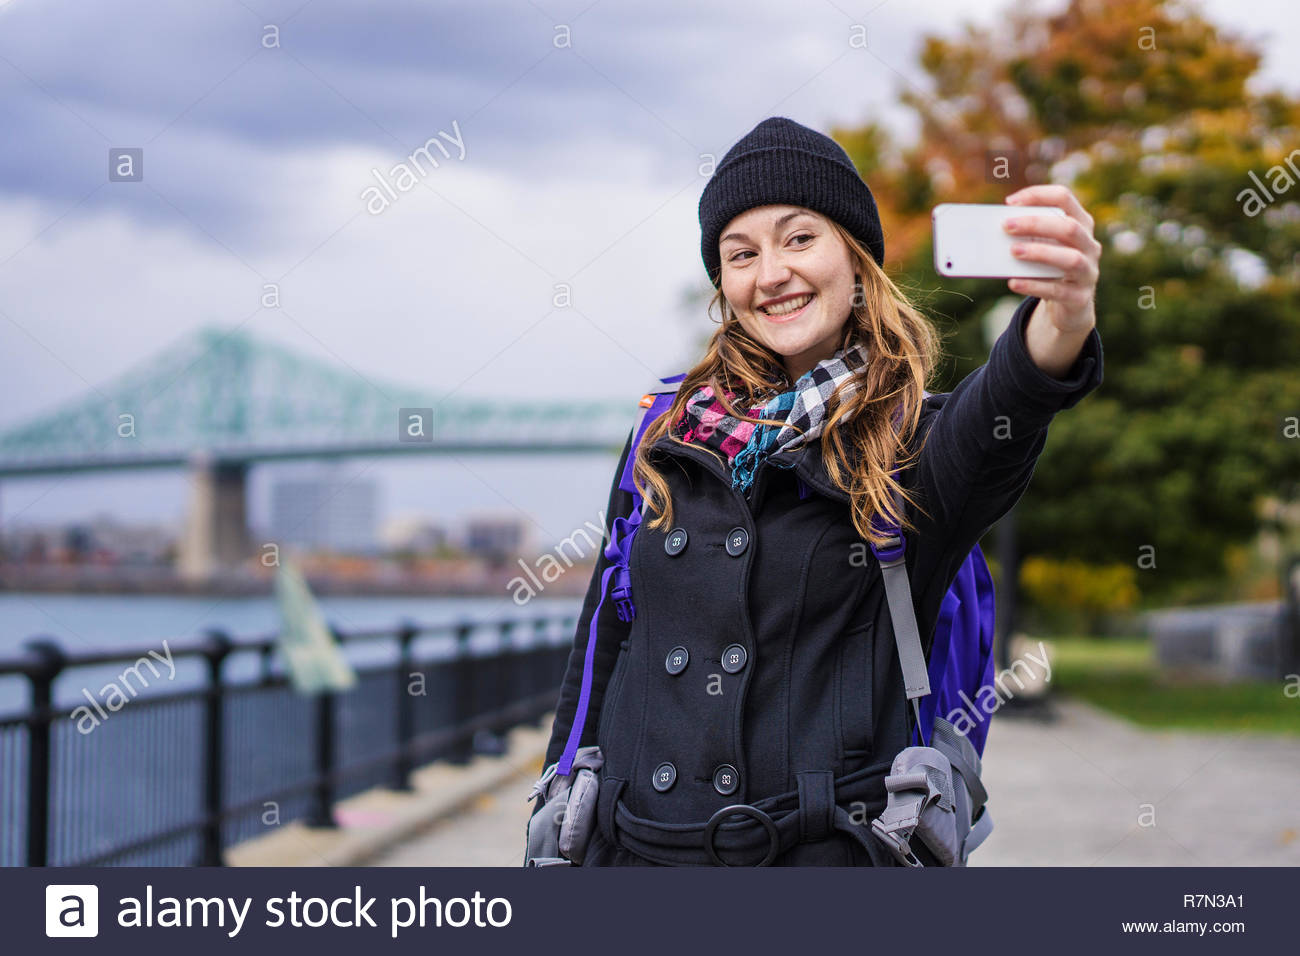 Solo woman traveller using smartphone to take selfie, Montreal, Quebec, Canada - Stock Image